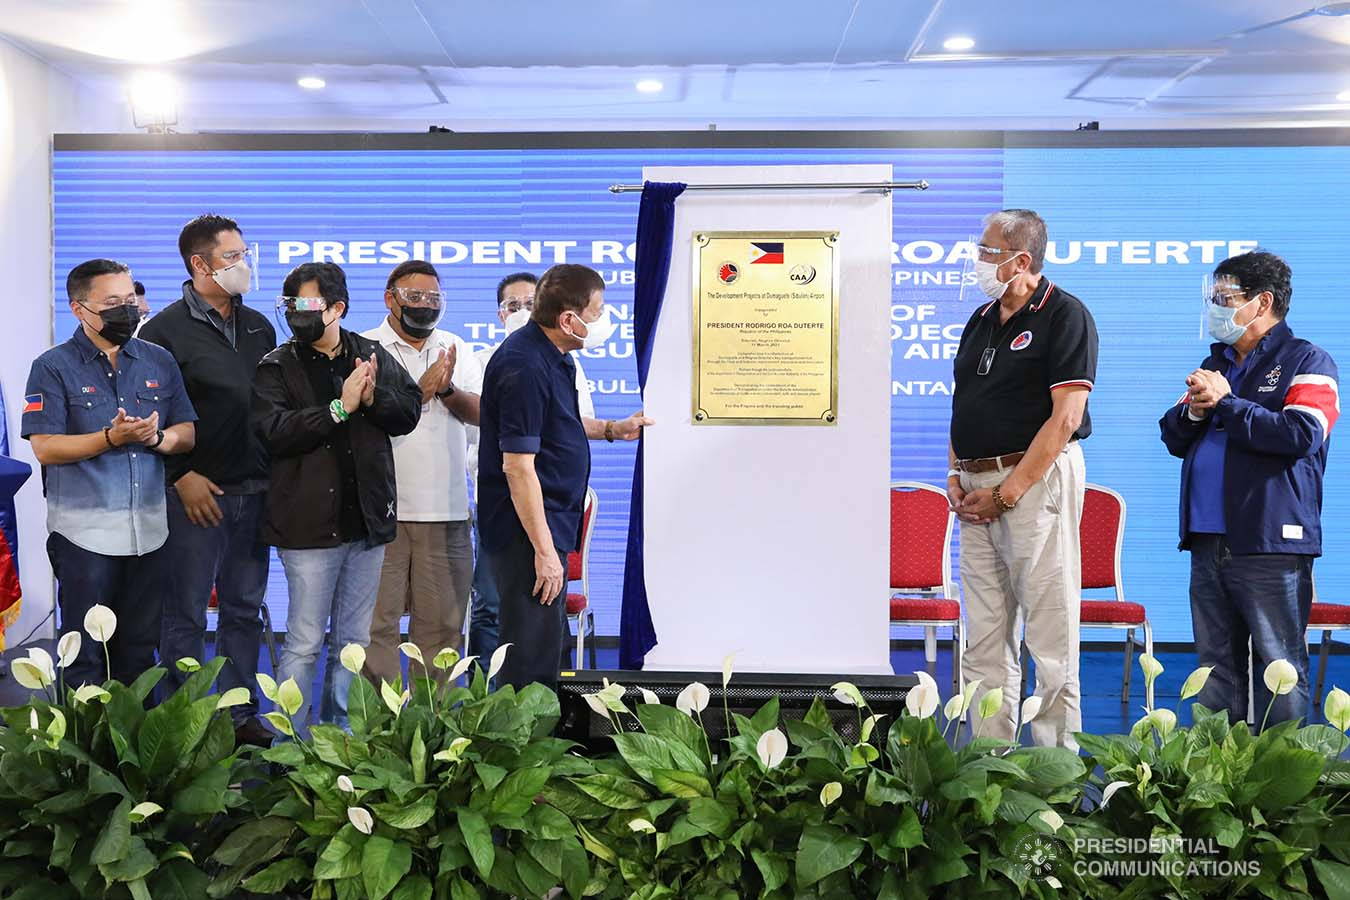 """President Rodrigo Roa Duterte leads the unveiling of the marker of the development projects at Dumaguete (Sibulan) Airport in Sibulan, Negros Oriental on March 11, 2021. The President was assisted by Senator Christopher Lawrence """"Bong"""" Go, Transportation Secretary Arthur Tugade, Presidential Assistant for the Visayas Secretary Michael Lloyd Dino, and Civil Aviation Authority of the Philippines Director General Jim Sydiongco. Also present are Presidential Communications and Operations Office Secretary Martin Andanar, Presidential Spokesperson Herminio """"Harry"""" Roque Jr., Chief Presidential Legal Counsel Salvador """"Sal"""" Panelo, Labor and Employment Secretary Silvestre Bello III, and Negros Oriental Governor Roel Degamo. TOTO LOZANO/ PRESIDENTIAL PHOTO"""